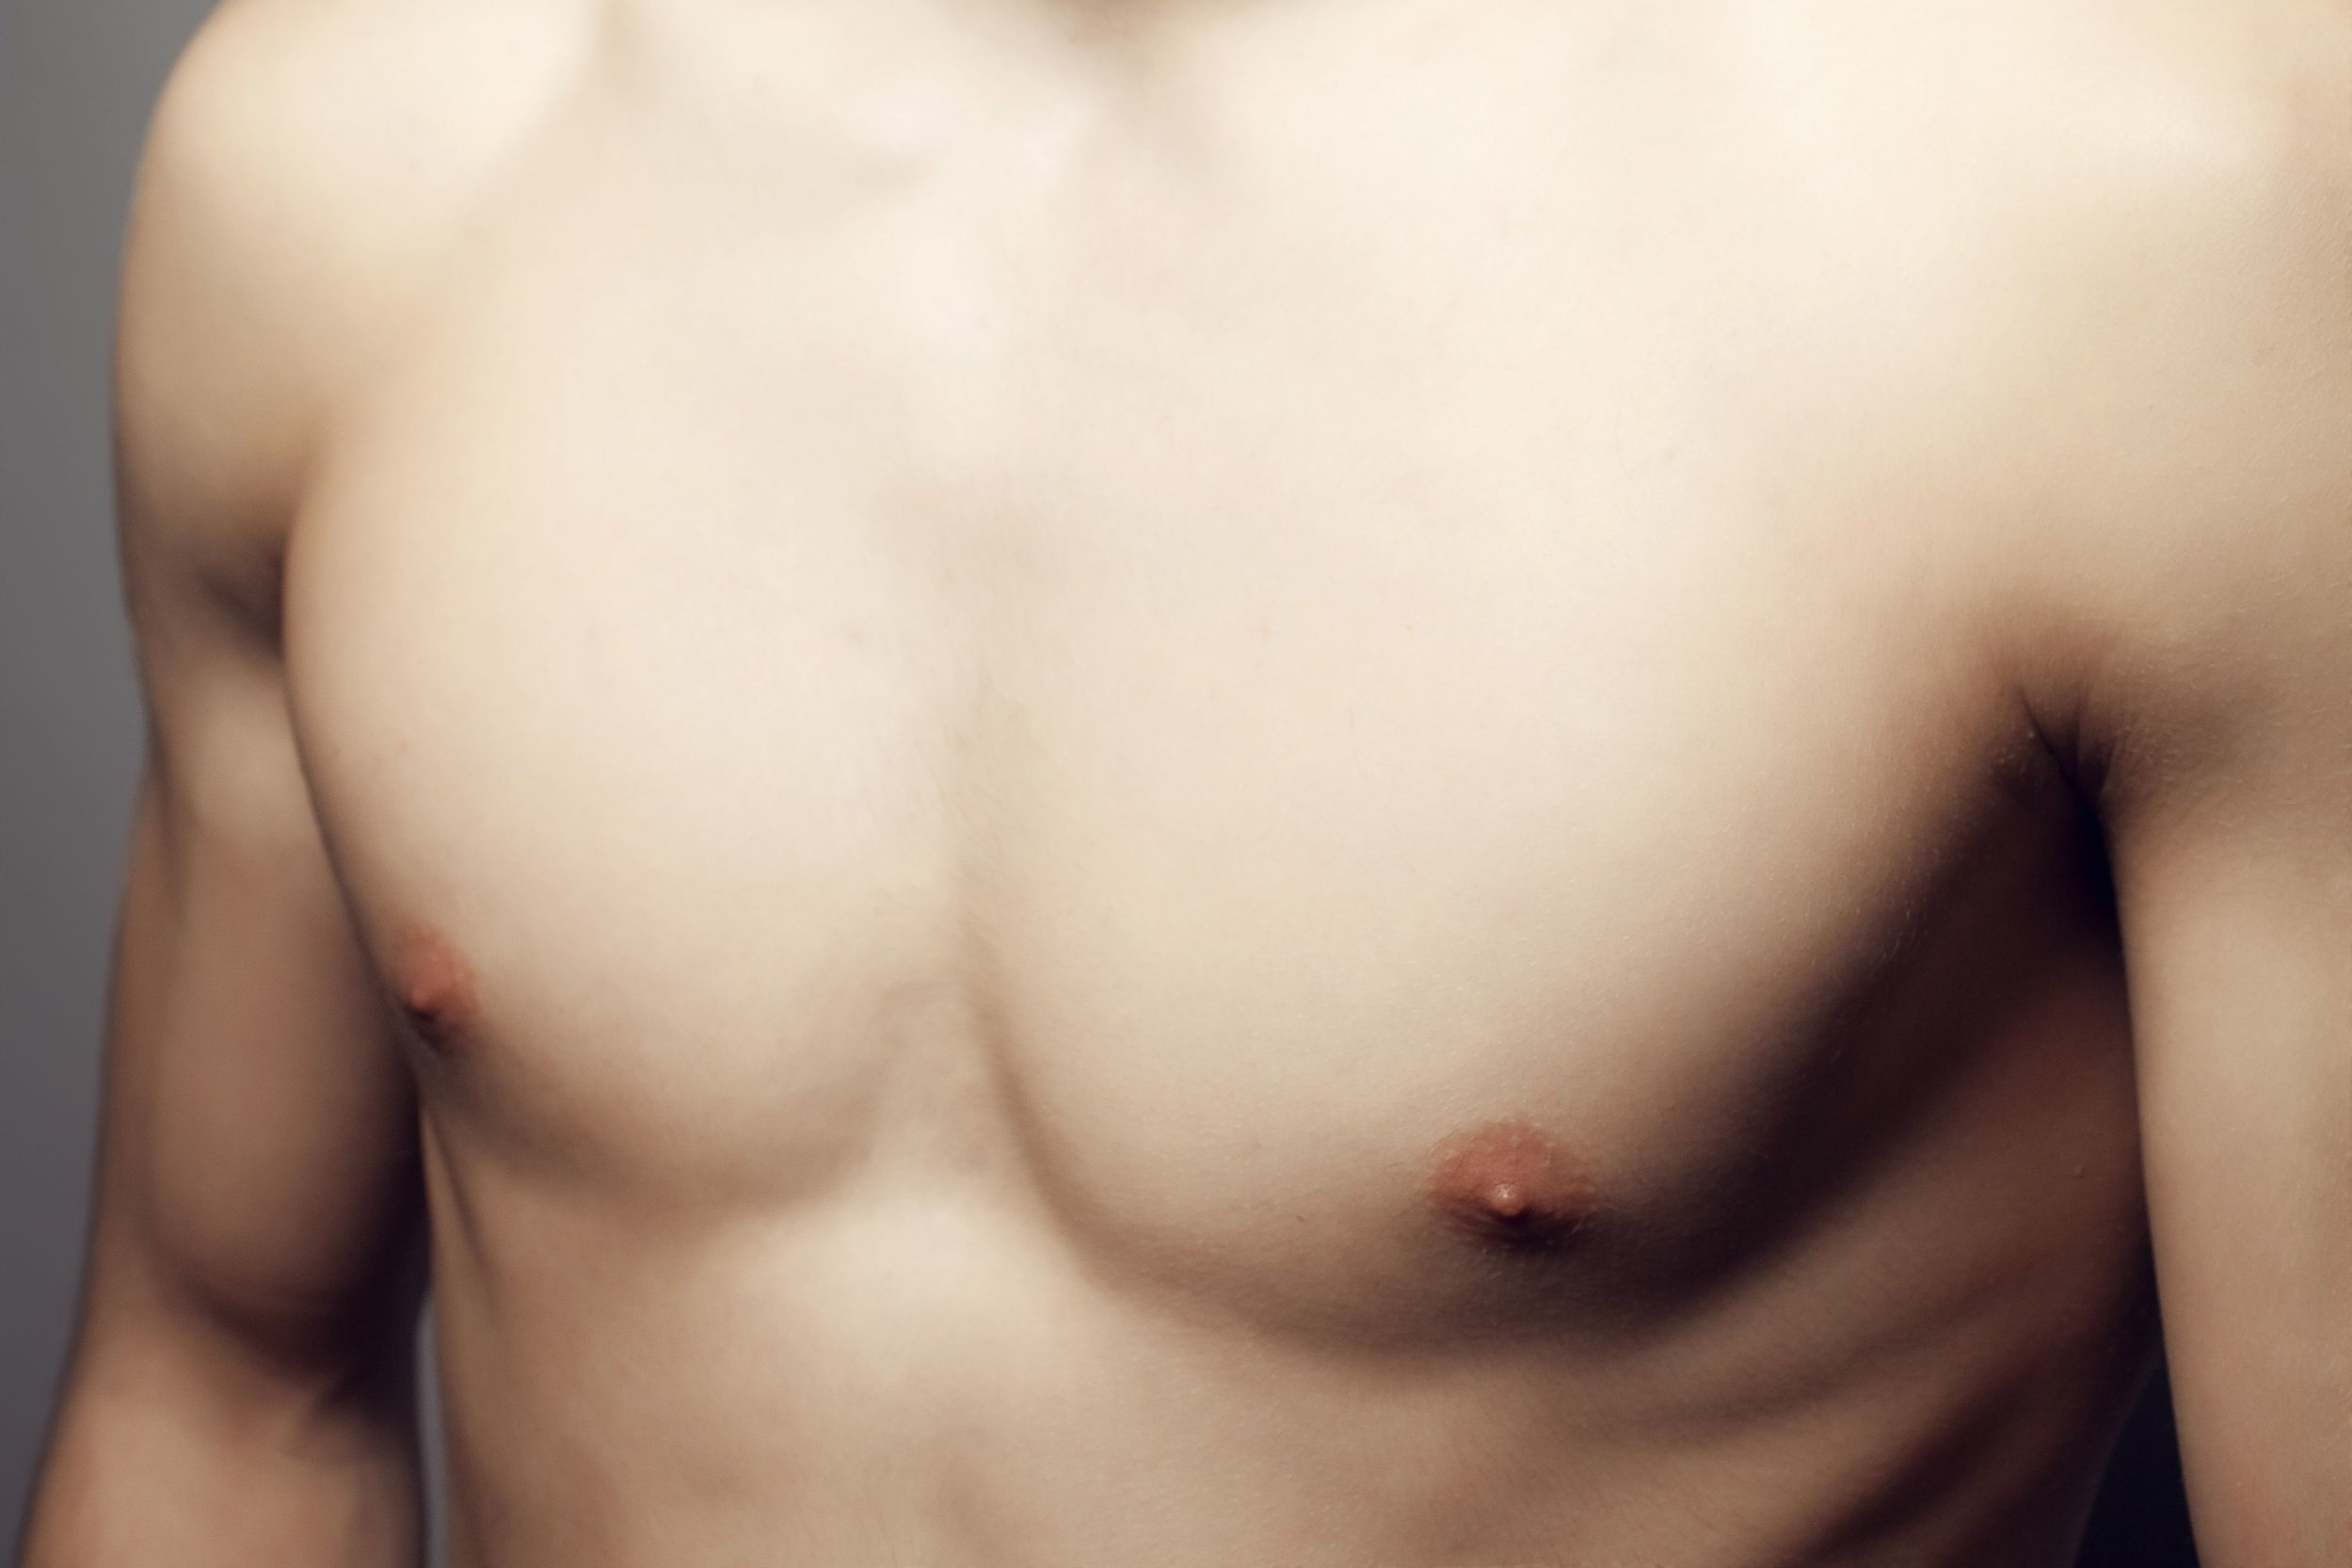 key treatment areas - Male Breast Reduction targets excess fat in the chest area that won't budge with exercise. It also targets Gynaecomastia, a common condition producing generalised enlargement of the male breast tissue.